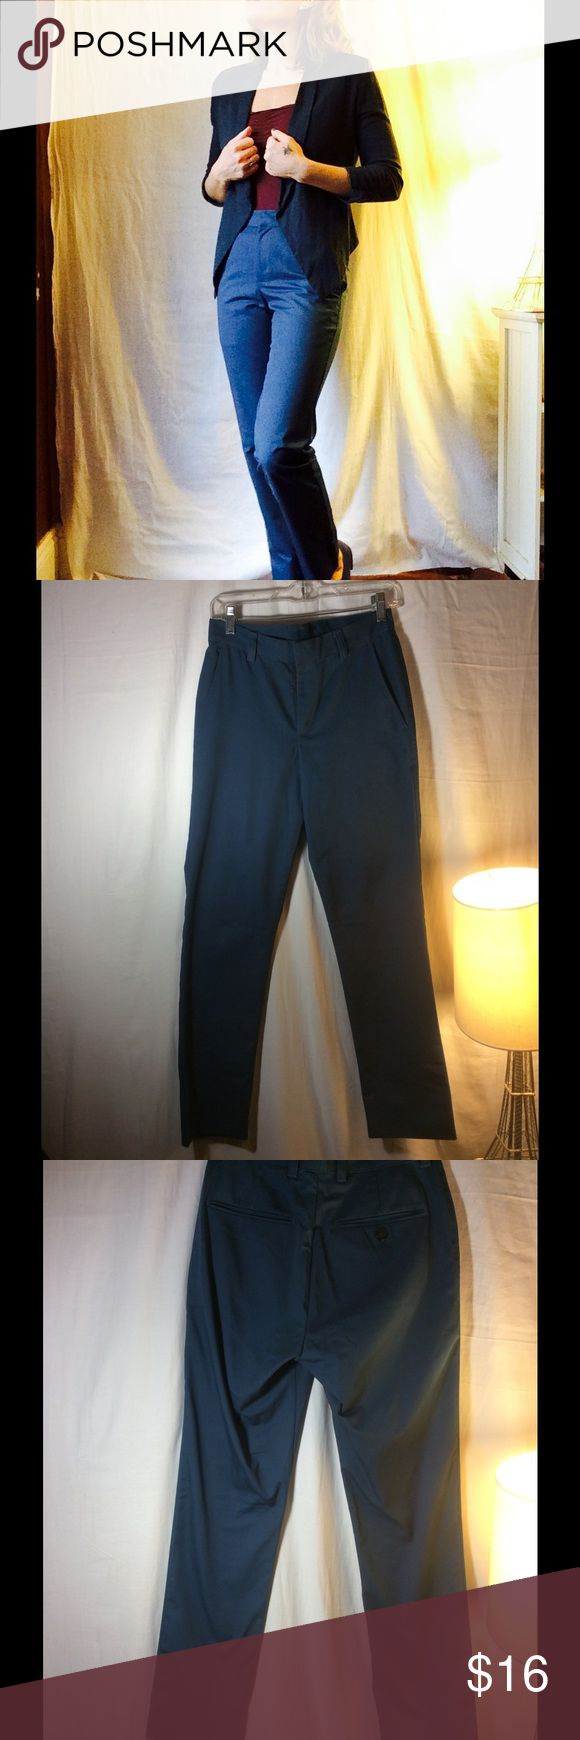 American Apparel Blue Twill Pant 28 American Apparel Blue Twill Pant 28. In excellent condition. Only worn once. American Apparel Pants Trousers